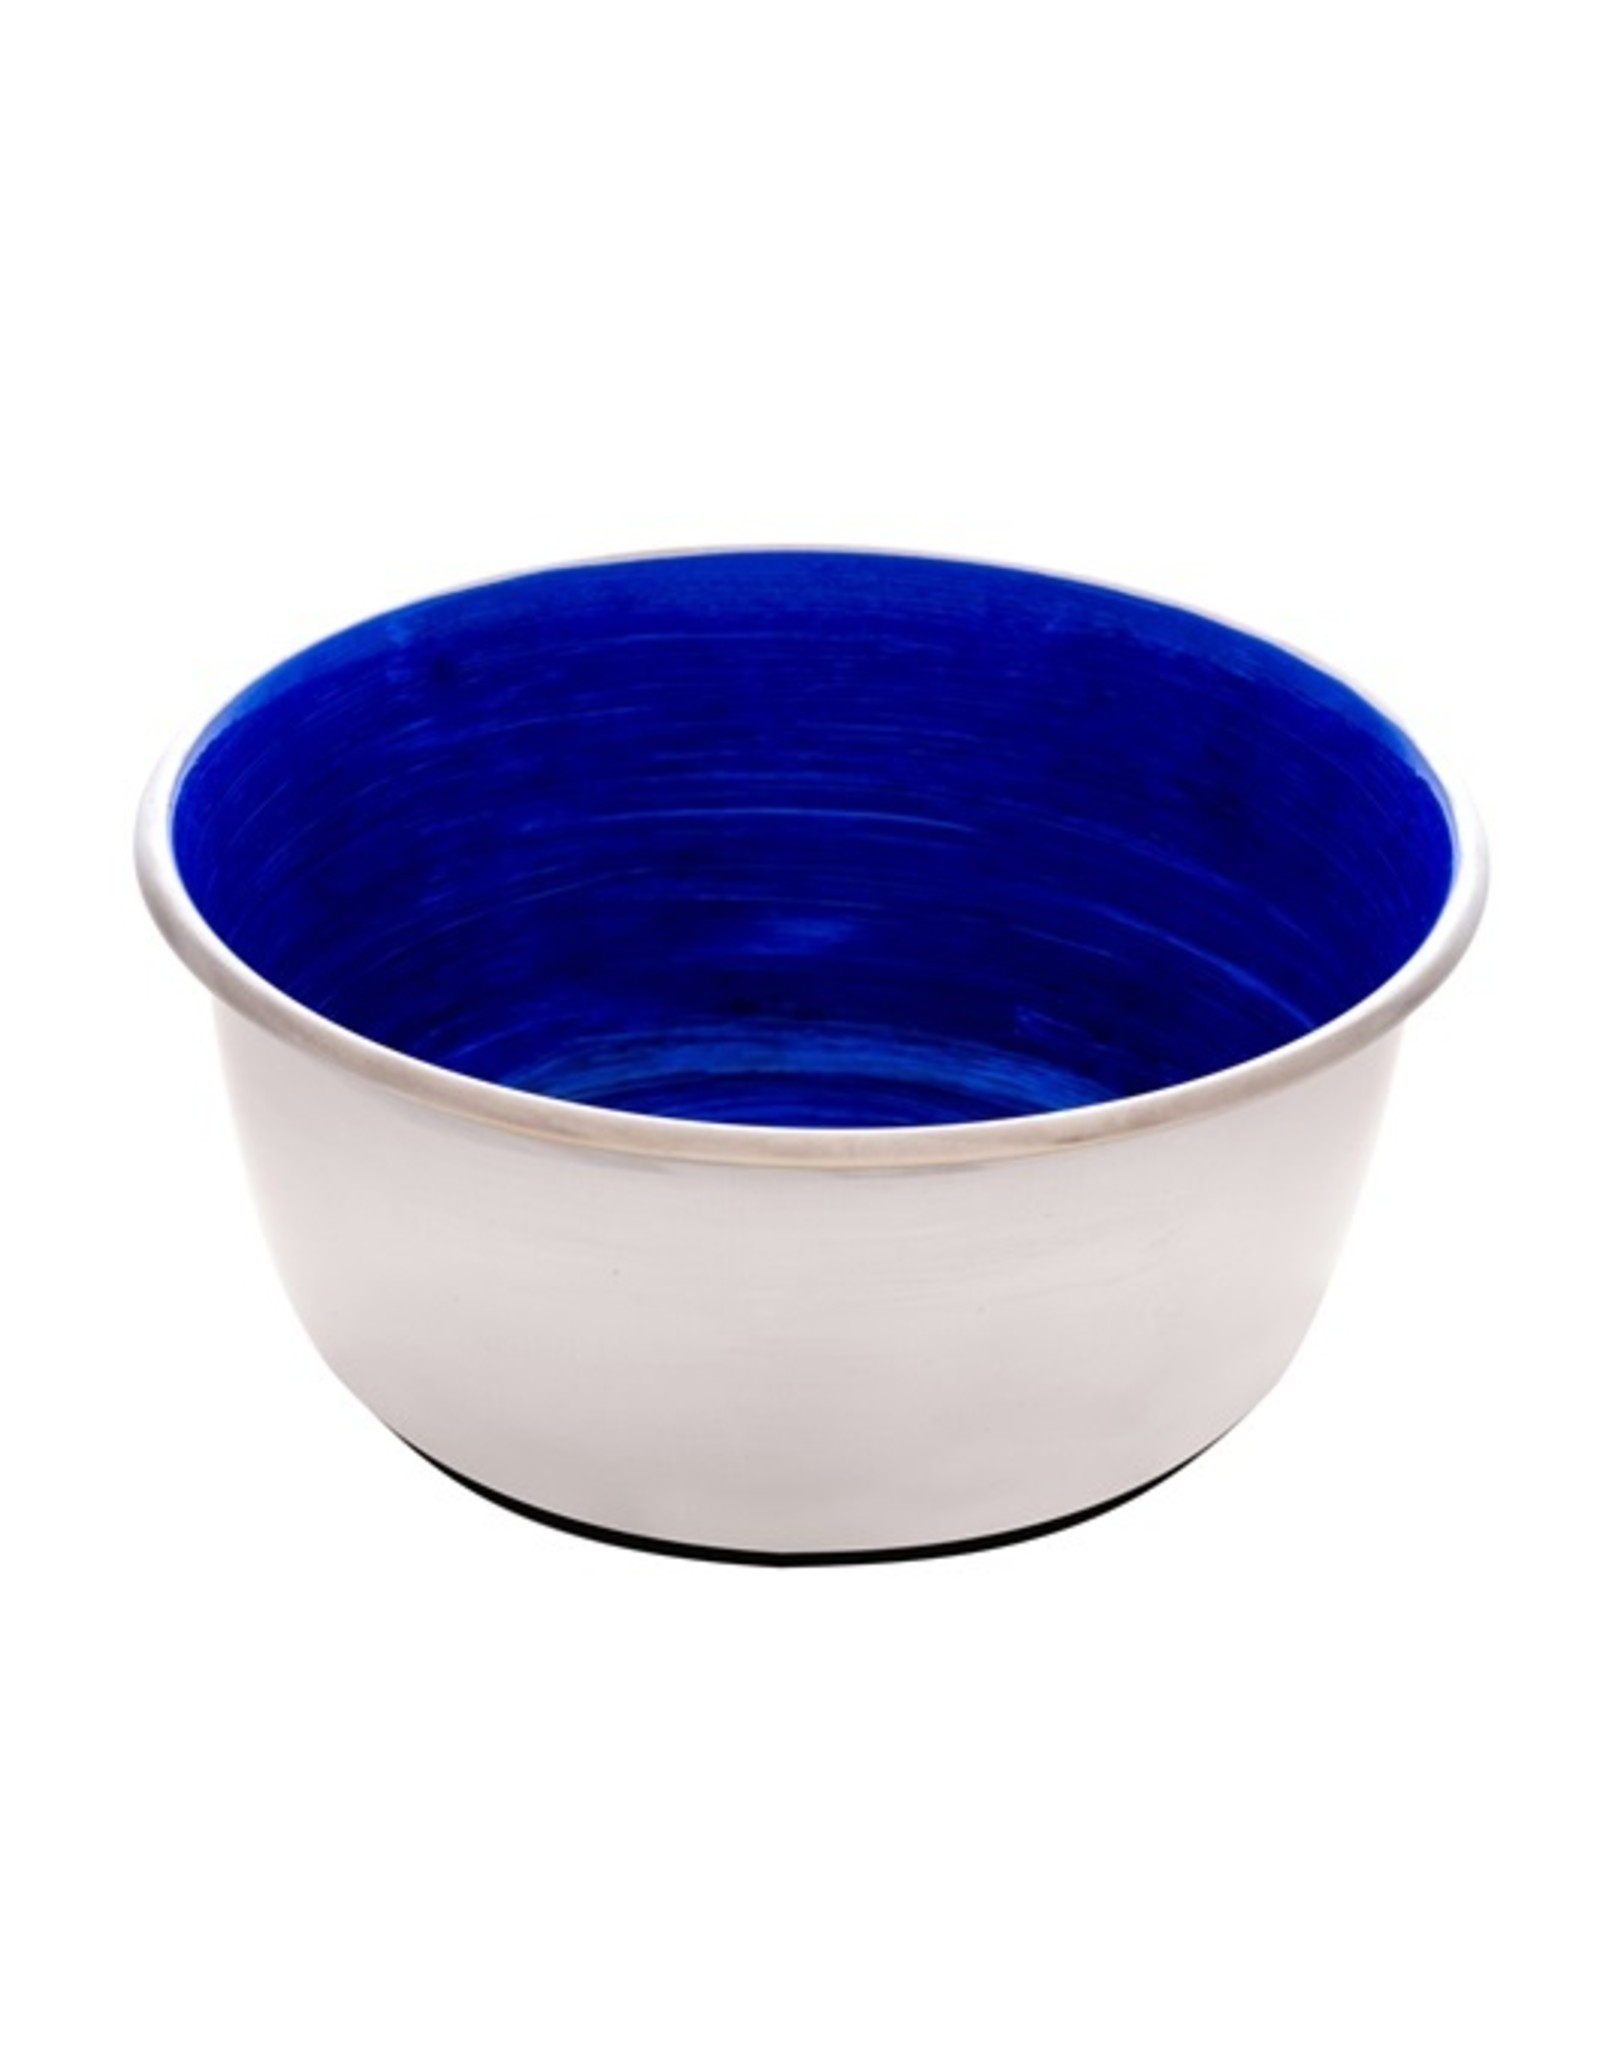 DogIt Stainless Steel Non-Skid Bowl Blue Swirl 950ml